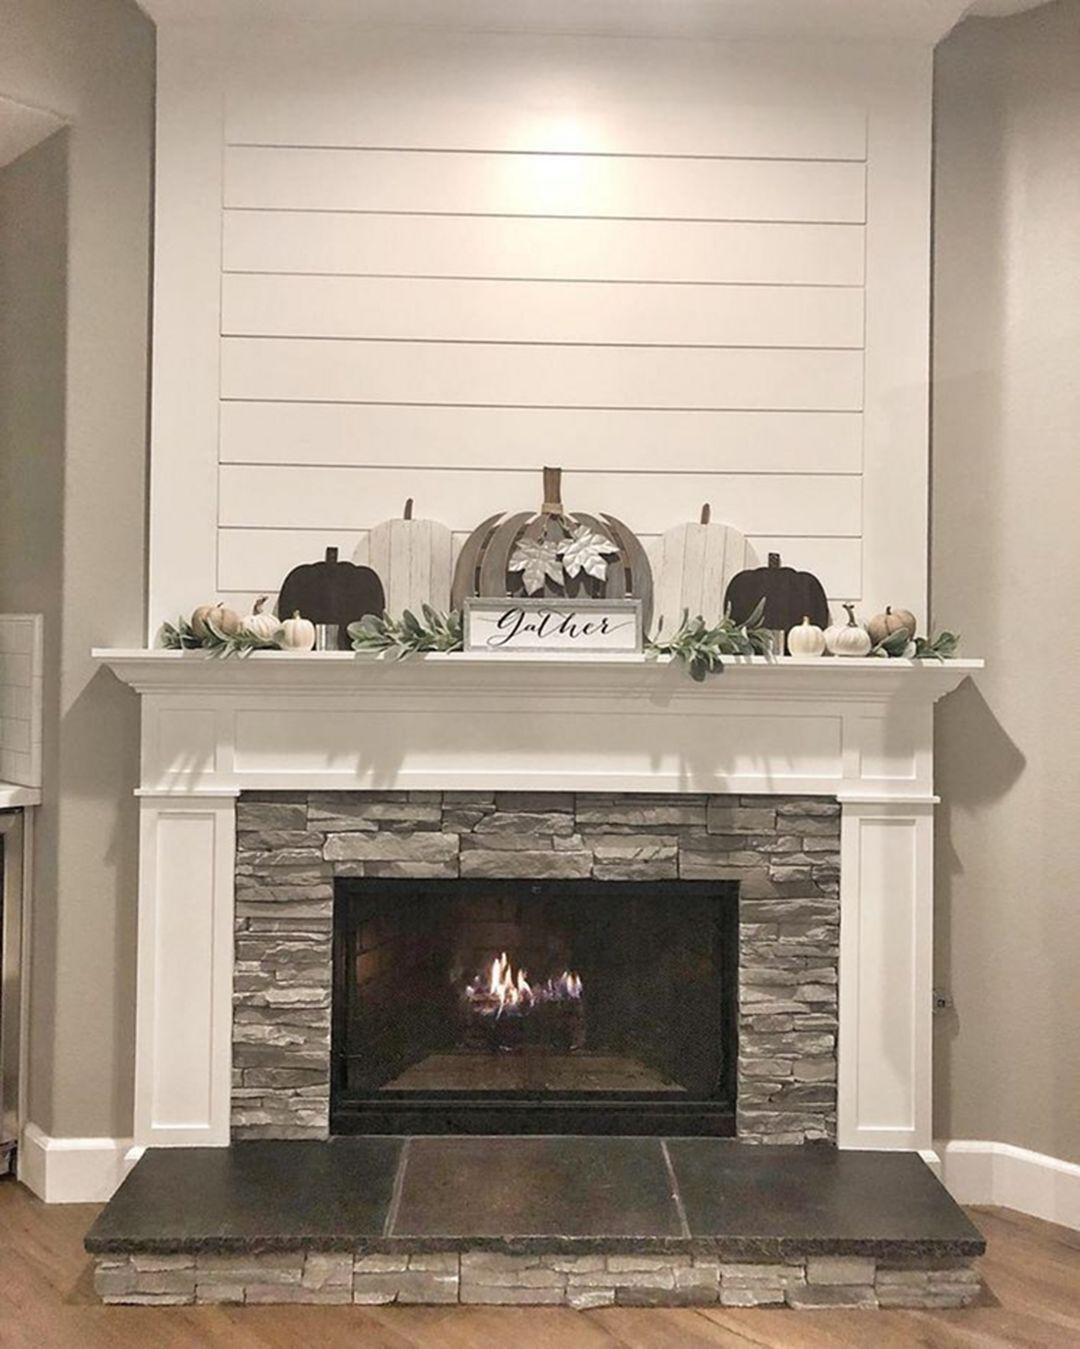 10 Beautiful Farmhouse Fireplace Mantel Decorations That Will Make You More Comfort Decor It S Farmhouse Fireplace Mantels Fireplace Remodel Home Fireplace